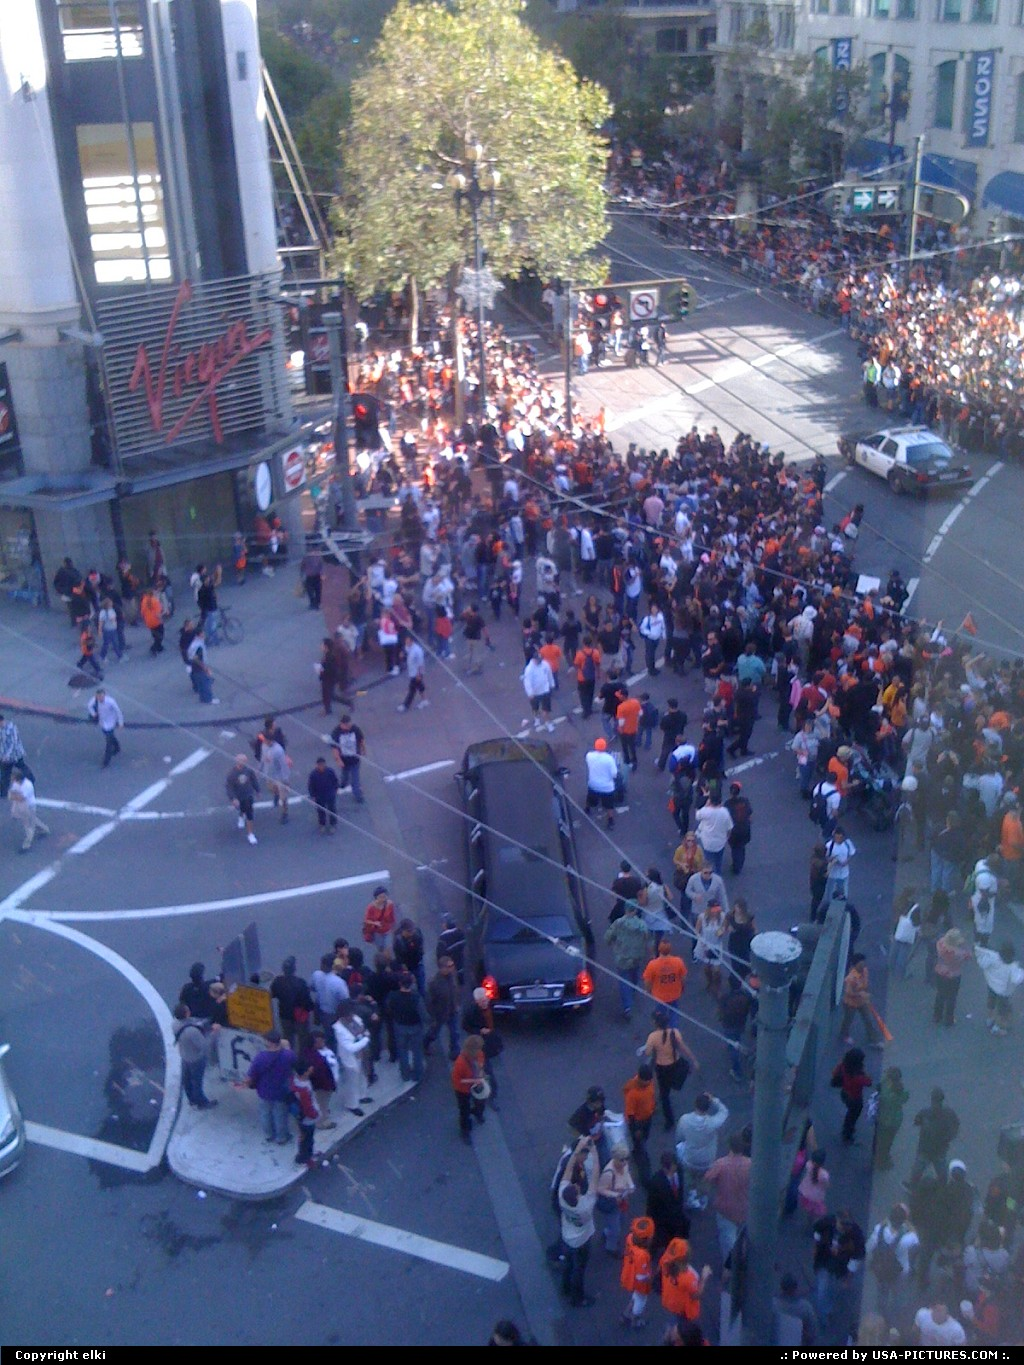 Picture by elki:San FranciscoCaliforniagiants world series parade